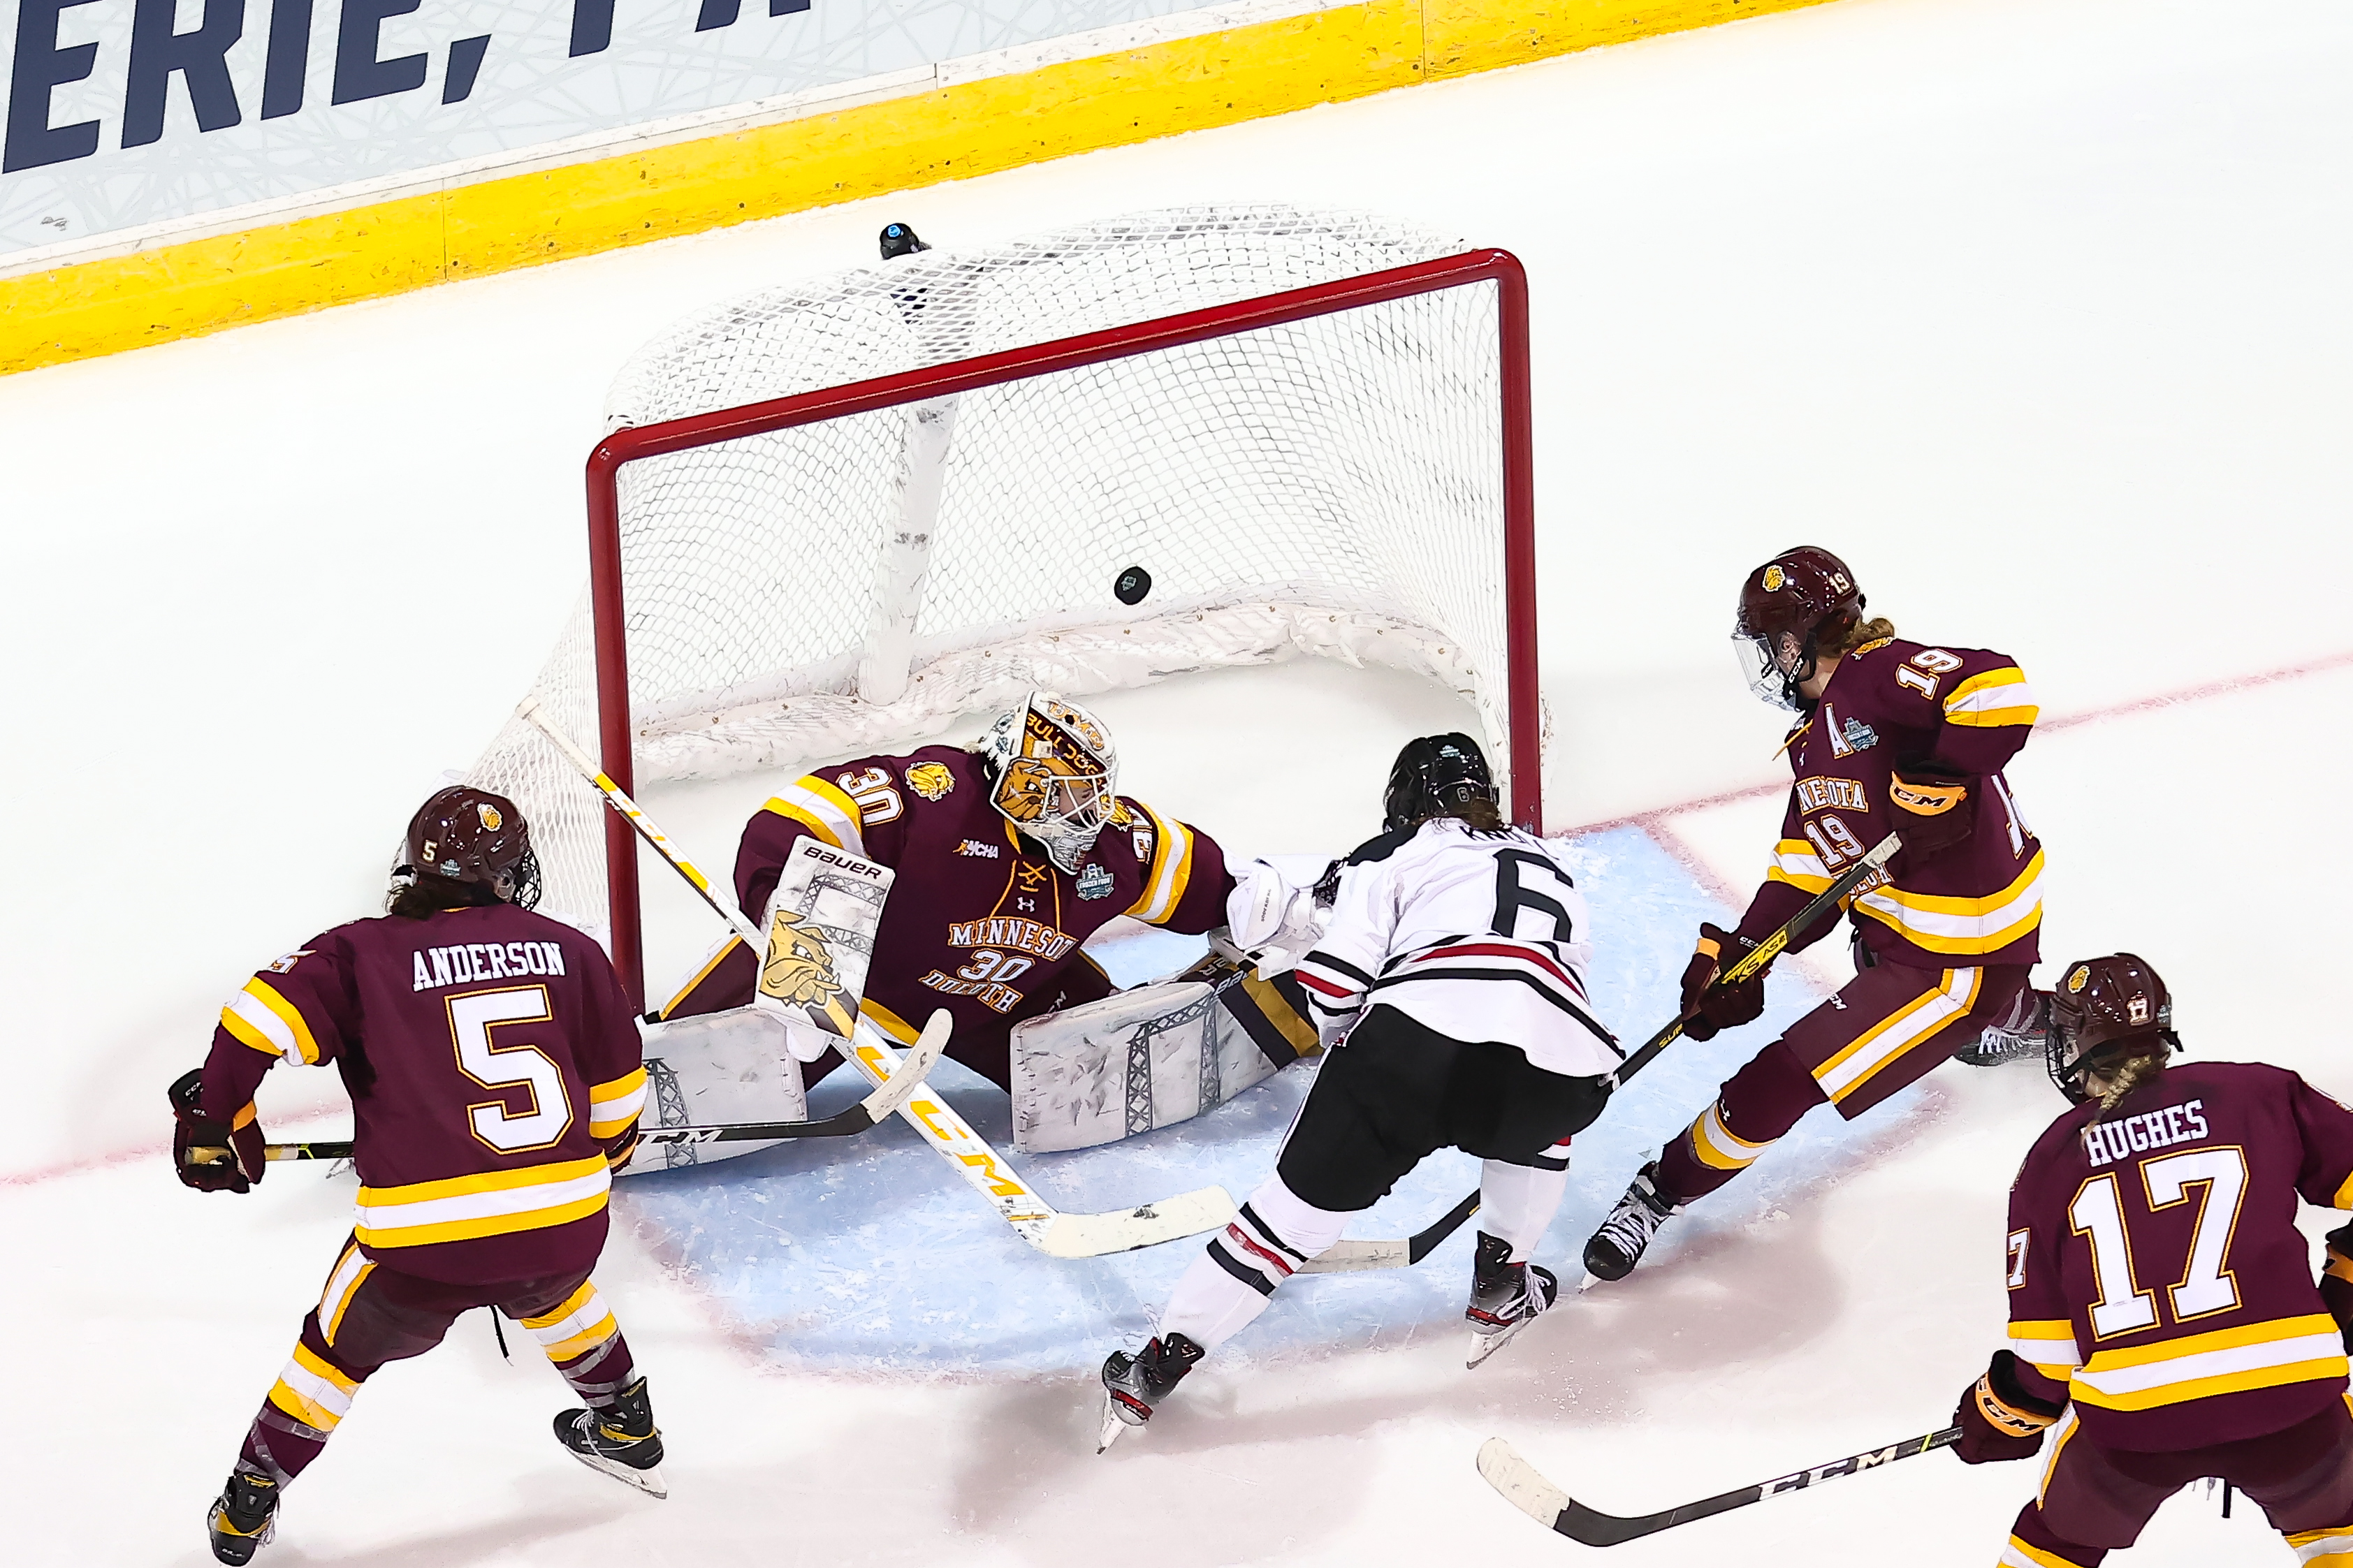 Northeastern's Katy Knoll watches her shot fly past Minnesota Duluth's goaltender as she crashes the net, surrounded by three Bulldogs players.